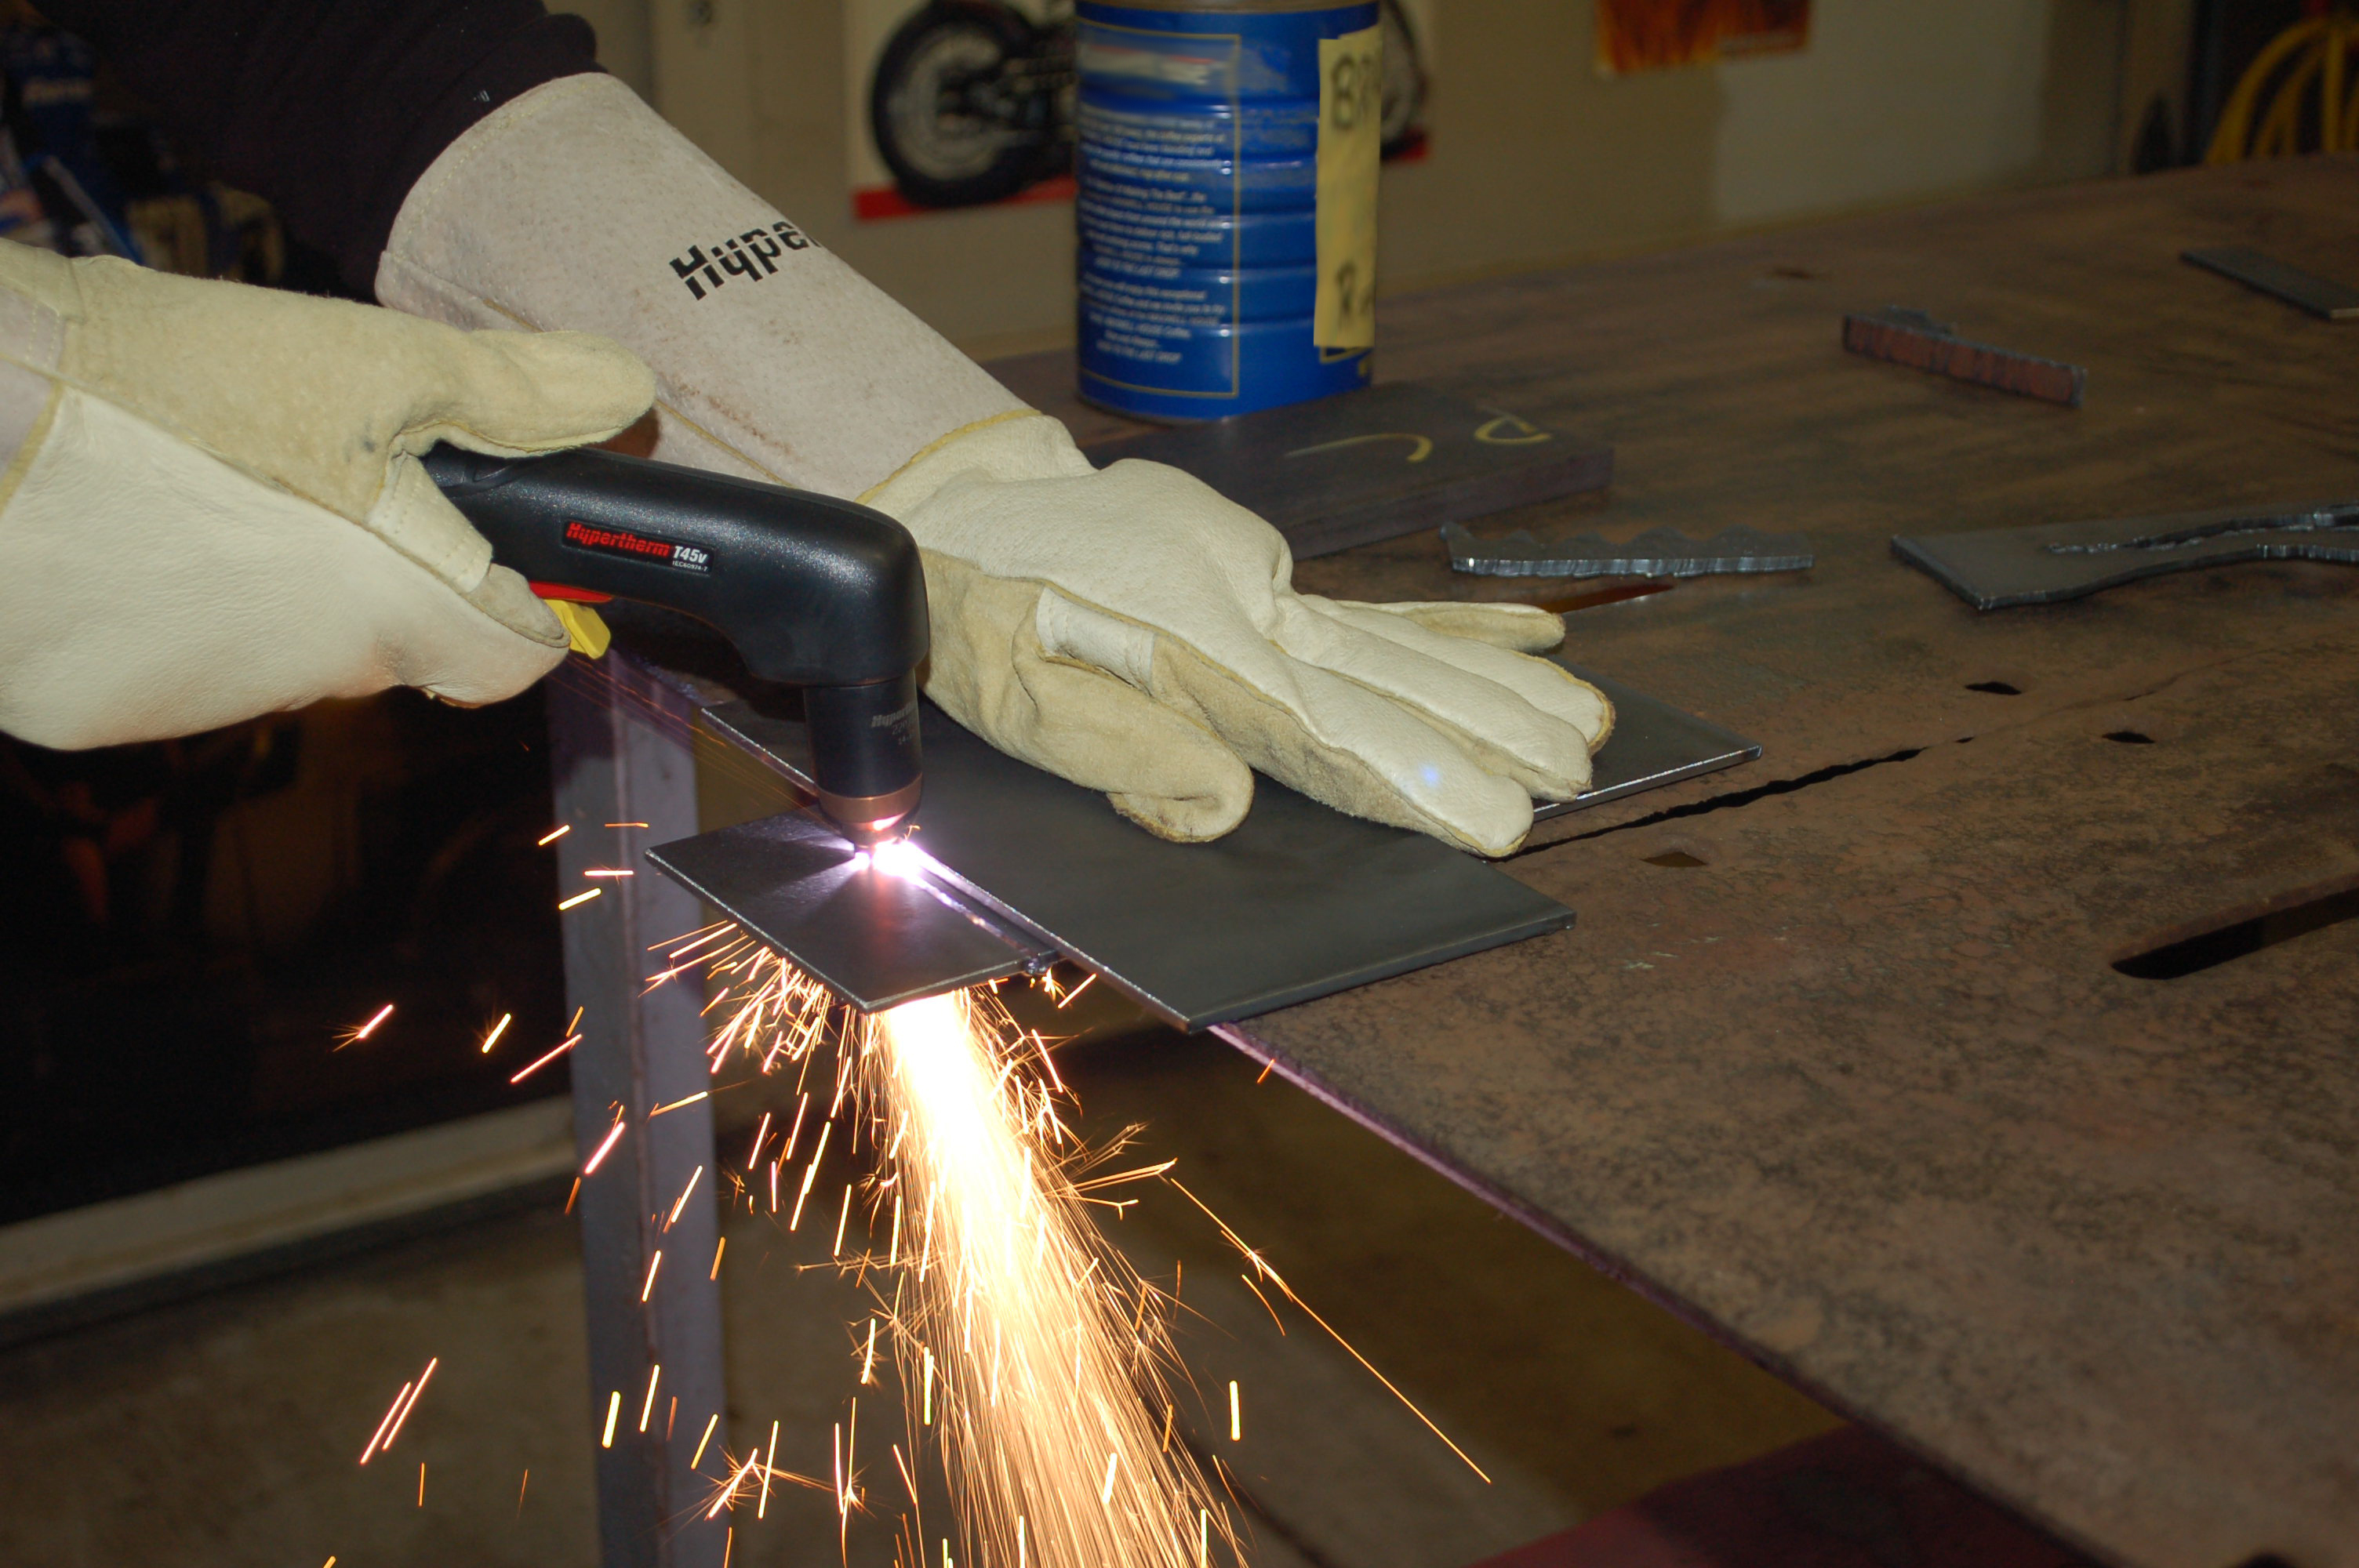 Miller Spectrum 375 >> Which Cheap Chinese Plasma Cutter Is The Best? – Plasma ...